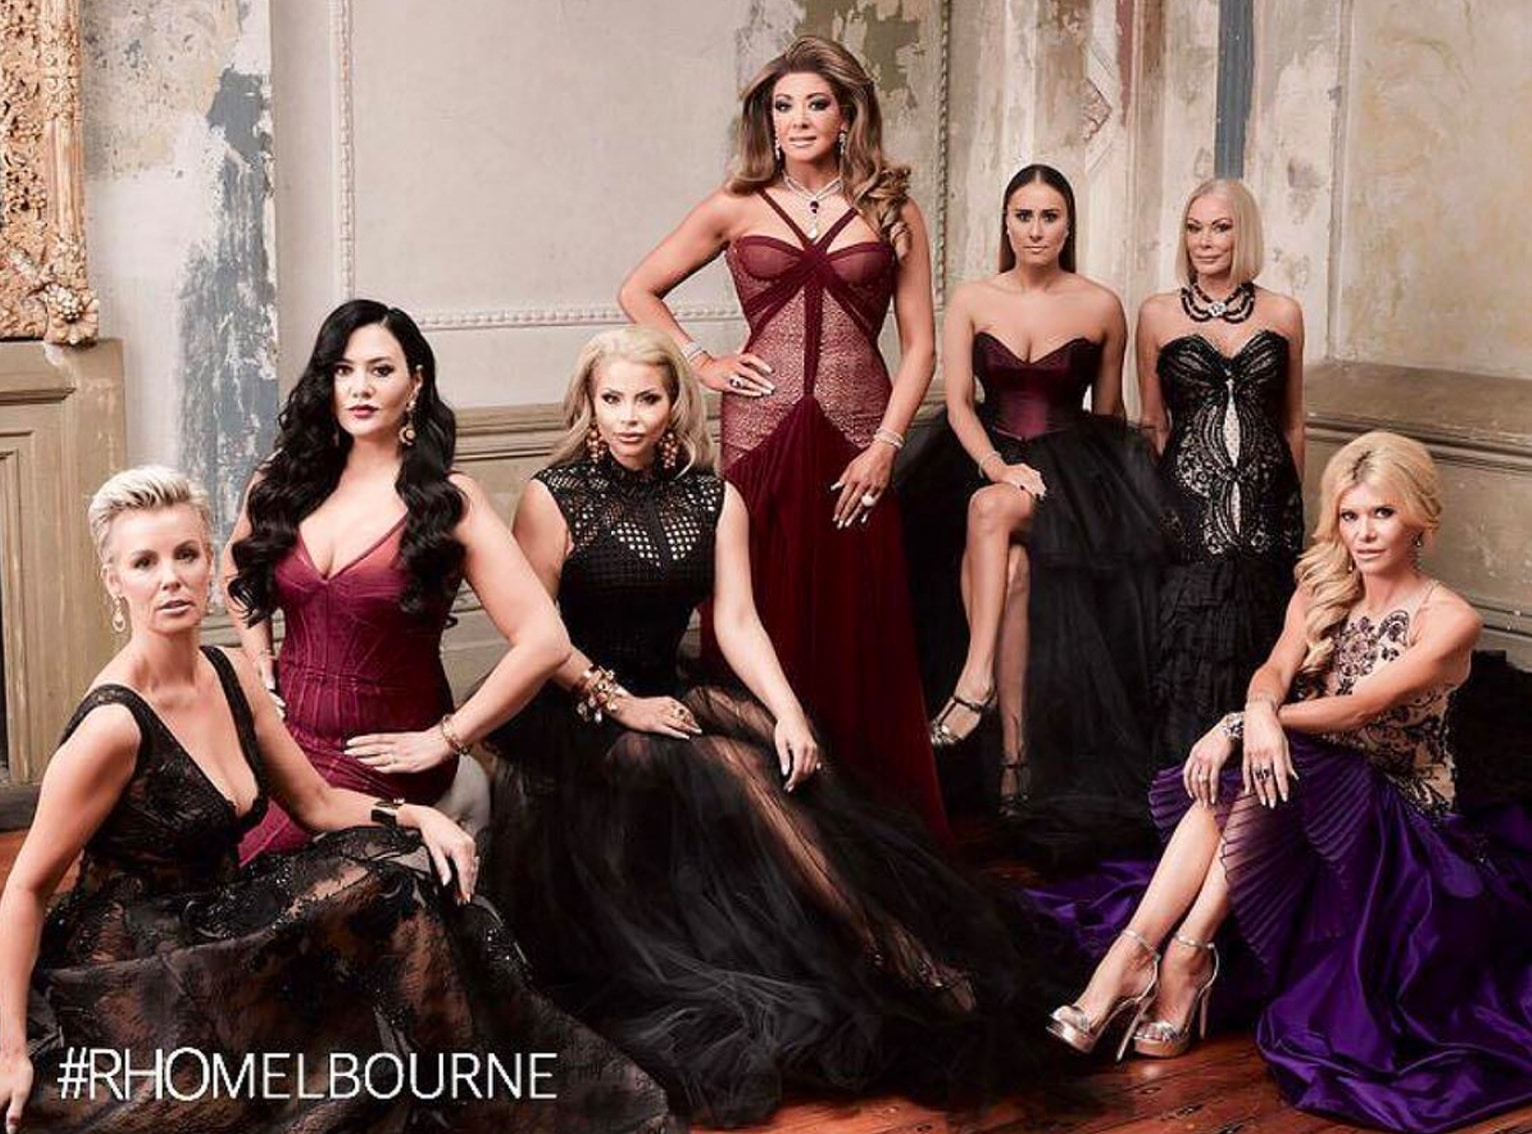 Gina Liano, Venus Behbahani Clark, Sally Bloomfield, Jackie Gillies, Lydia Schiavello,Gamble Breaux_Redki_Jewellery, RHOMelbourne_Redki_Jewellery, Foxel, Arena, RHOM, Real Housewives of Melbourne, OK Magazine